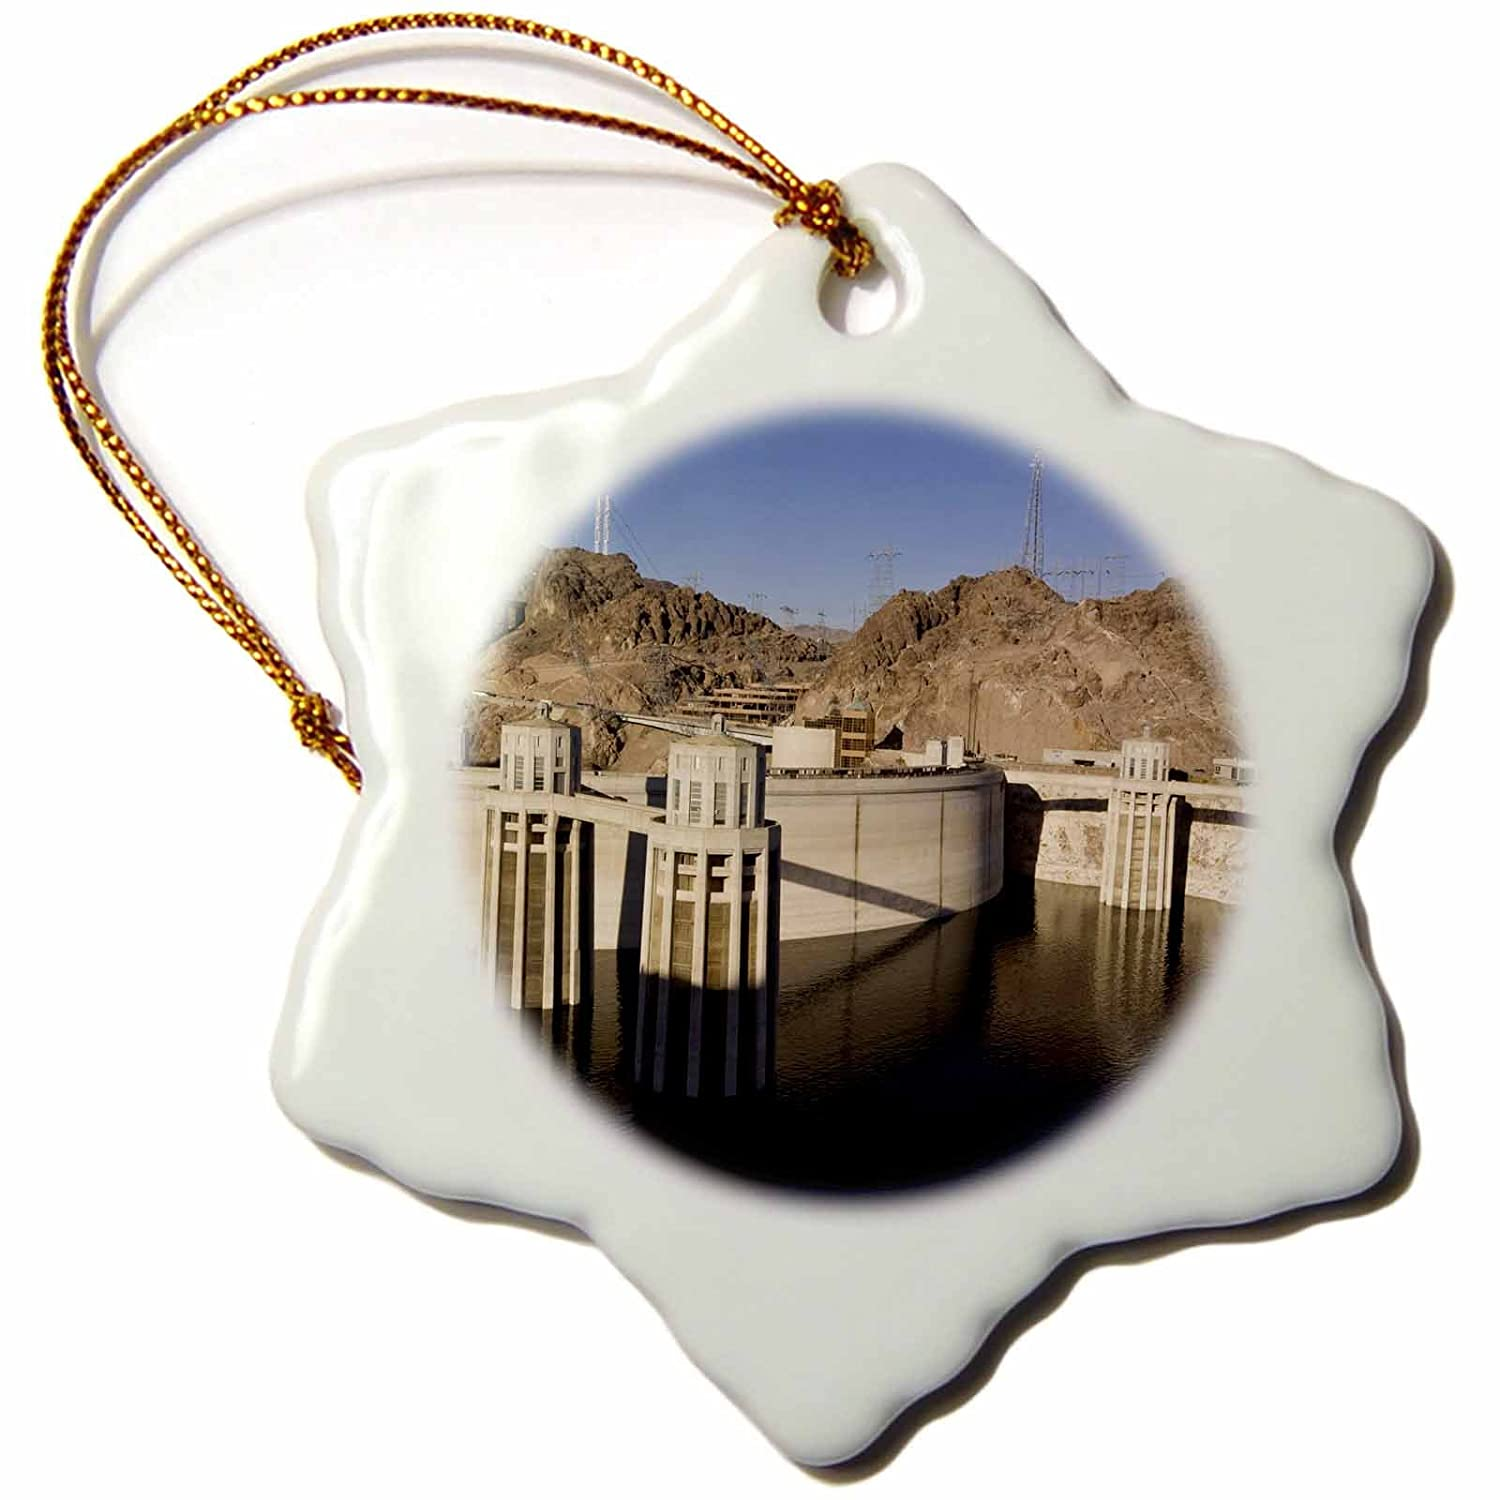 3dRose orn_92240_1 Low Water levels at The Hoover Dam, Lake Mead, NV US29 MPR0048 Maresa Pryor Snowflake Porcelain Ornament, 3-Inch